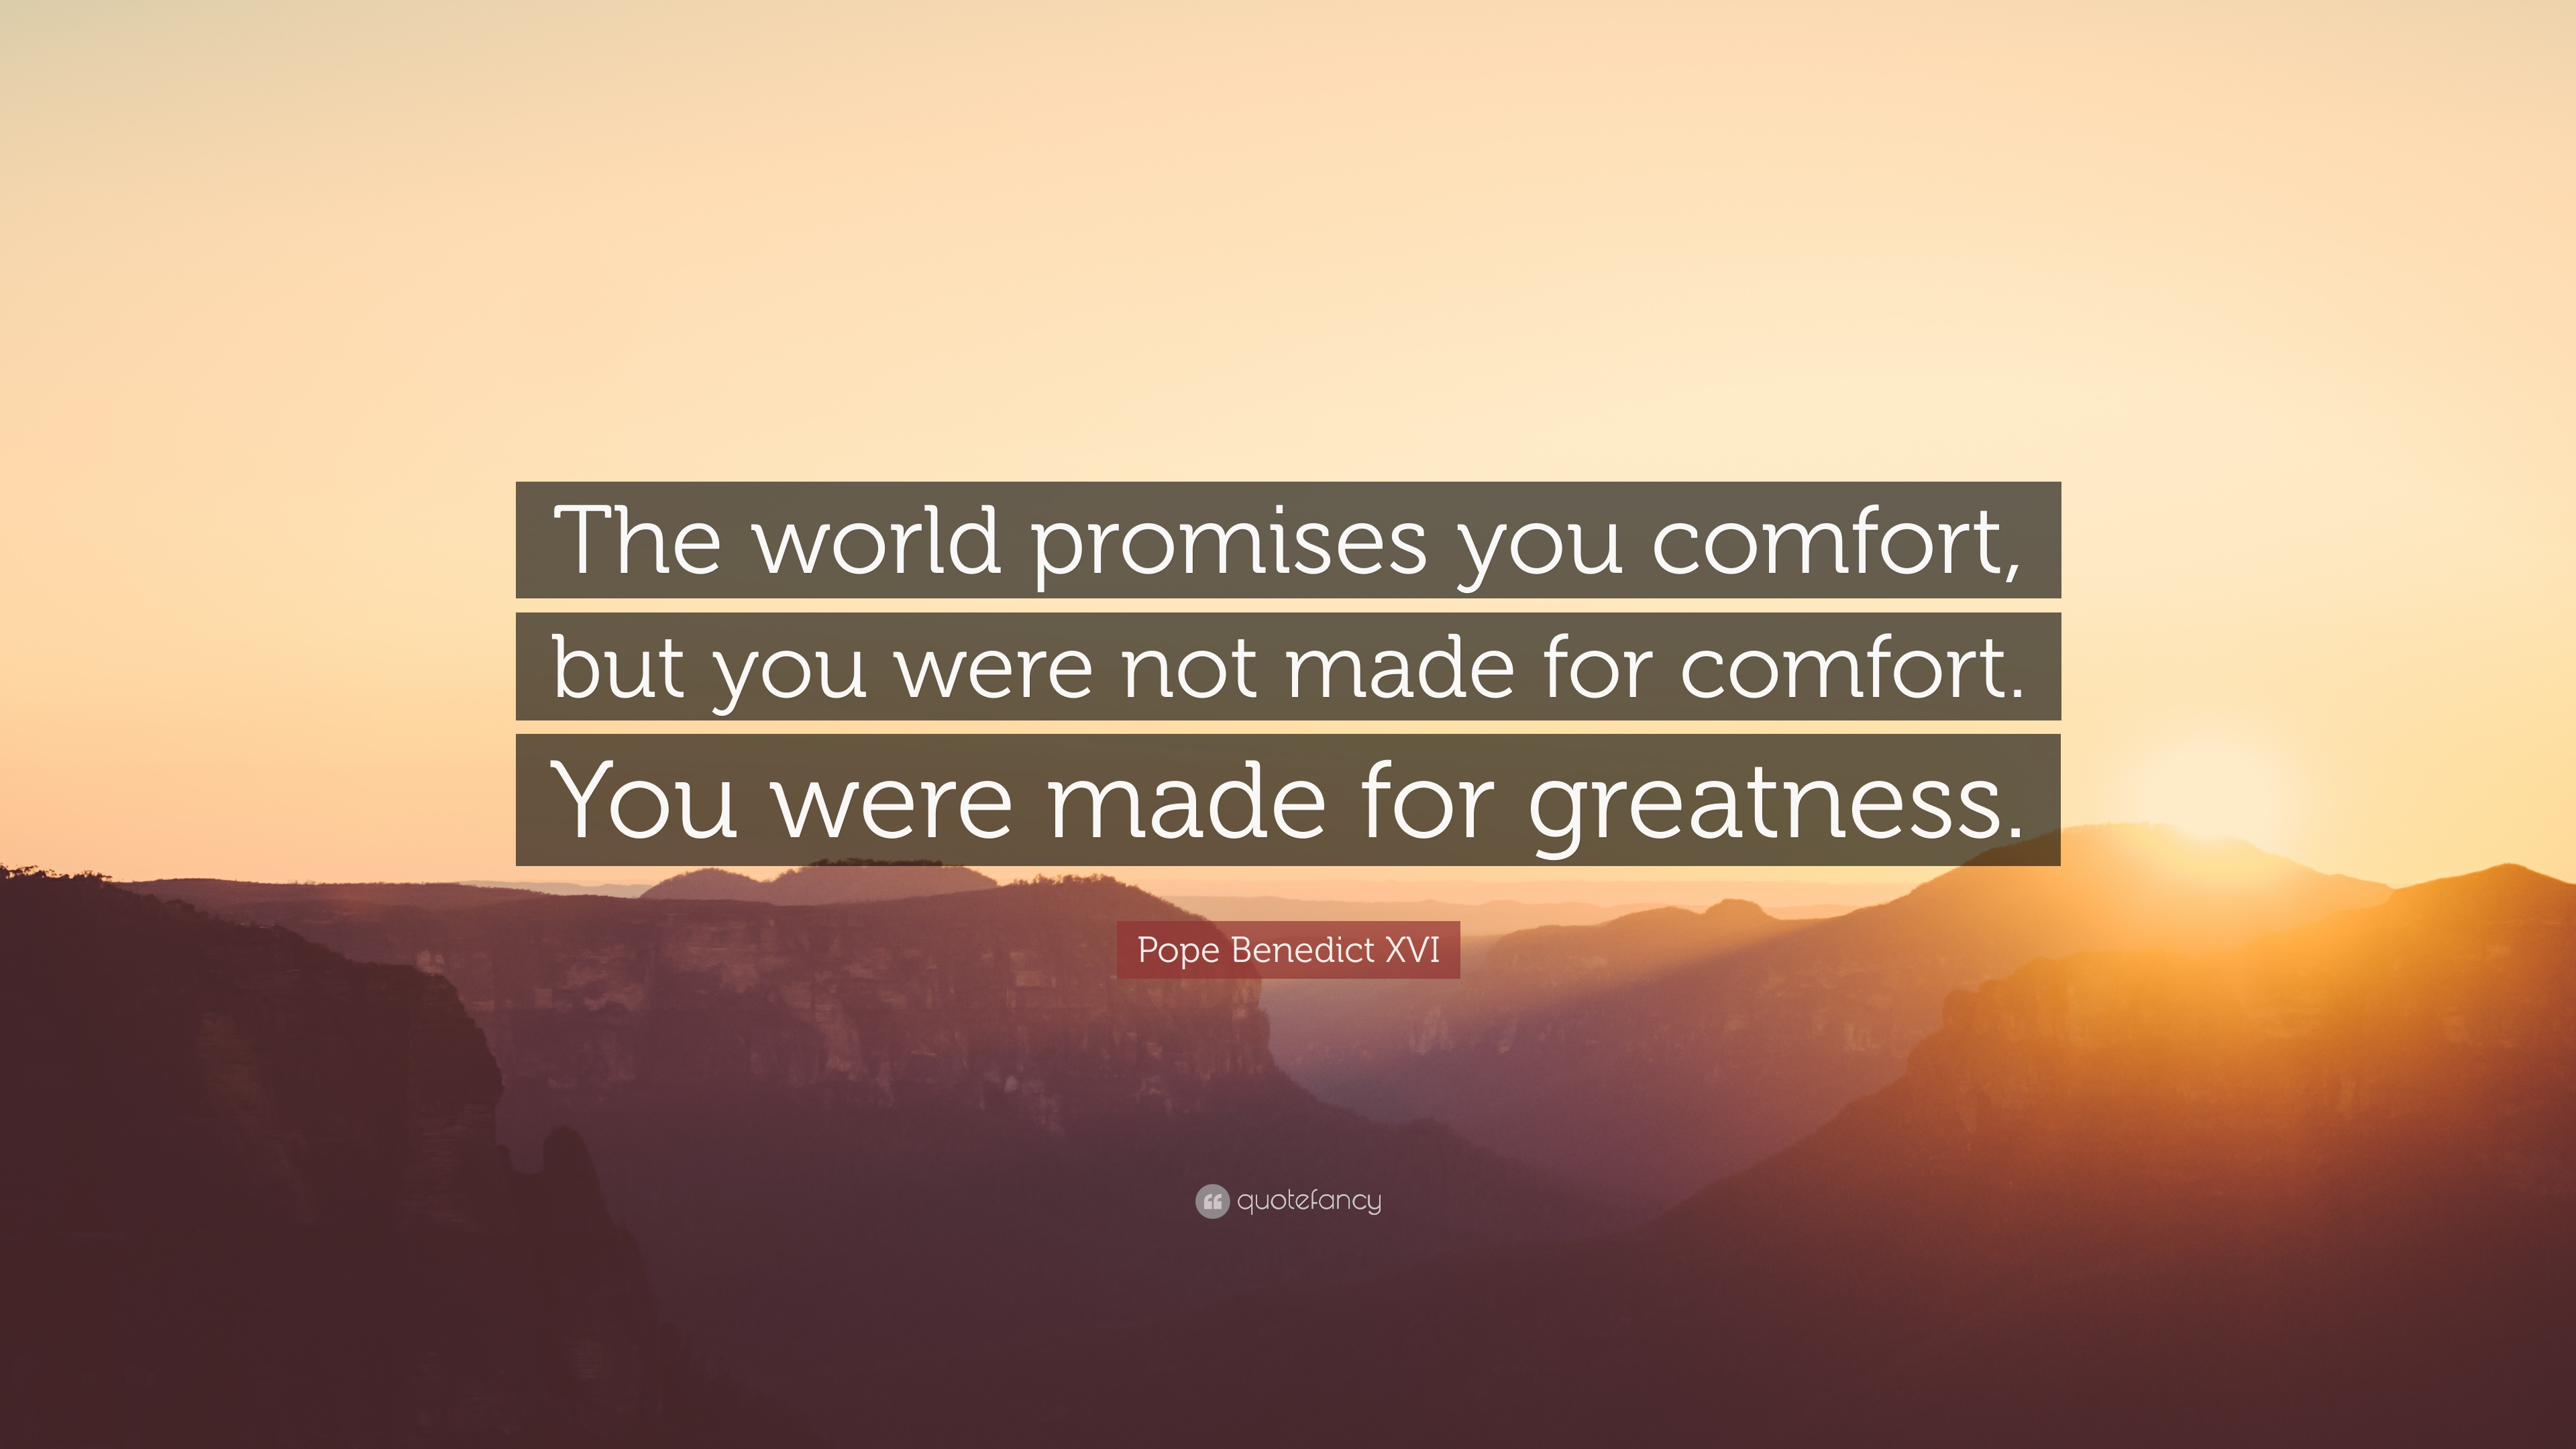 Motivational Football Quotes Wallpaper Pope Benedict Xvi Quote The World Promises You Comfort